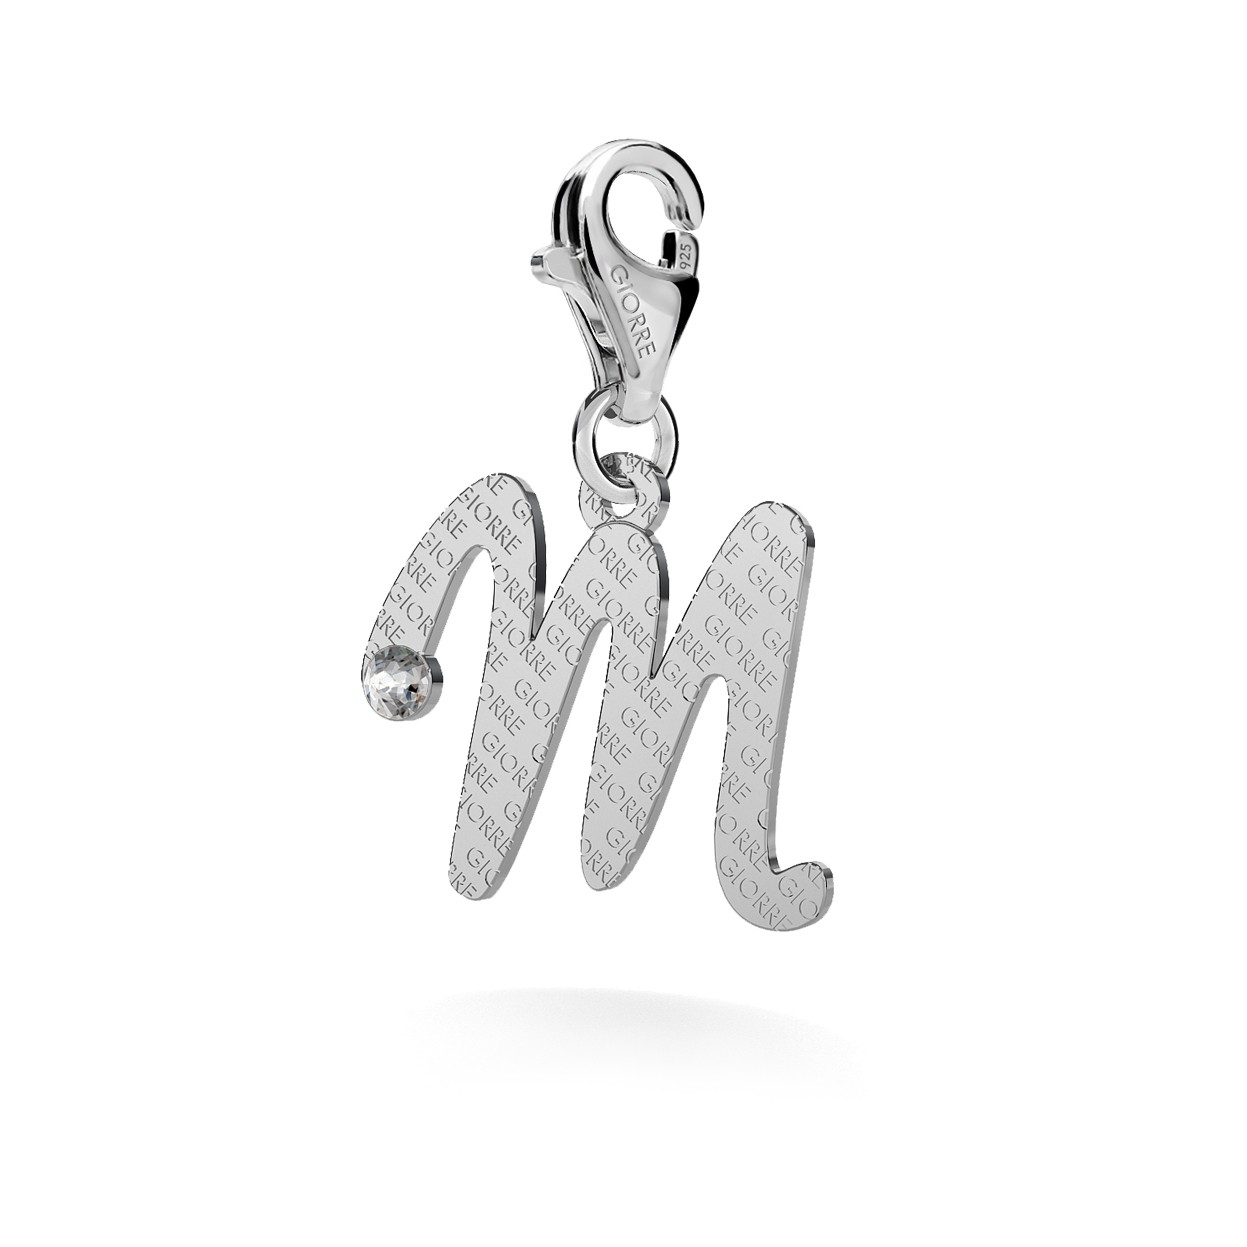 CHARM 28, LETTERS A - V, SILVER 925, RHODIUM OR GOLD PLATED